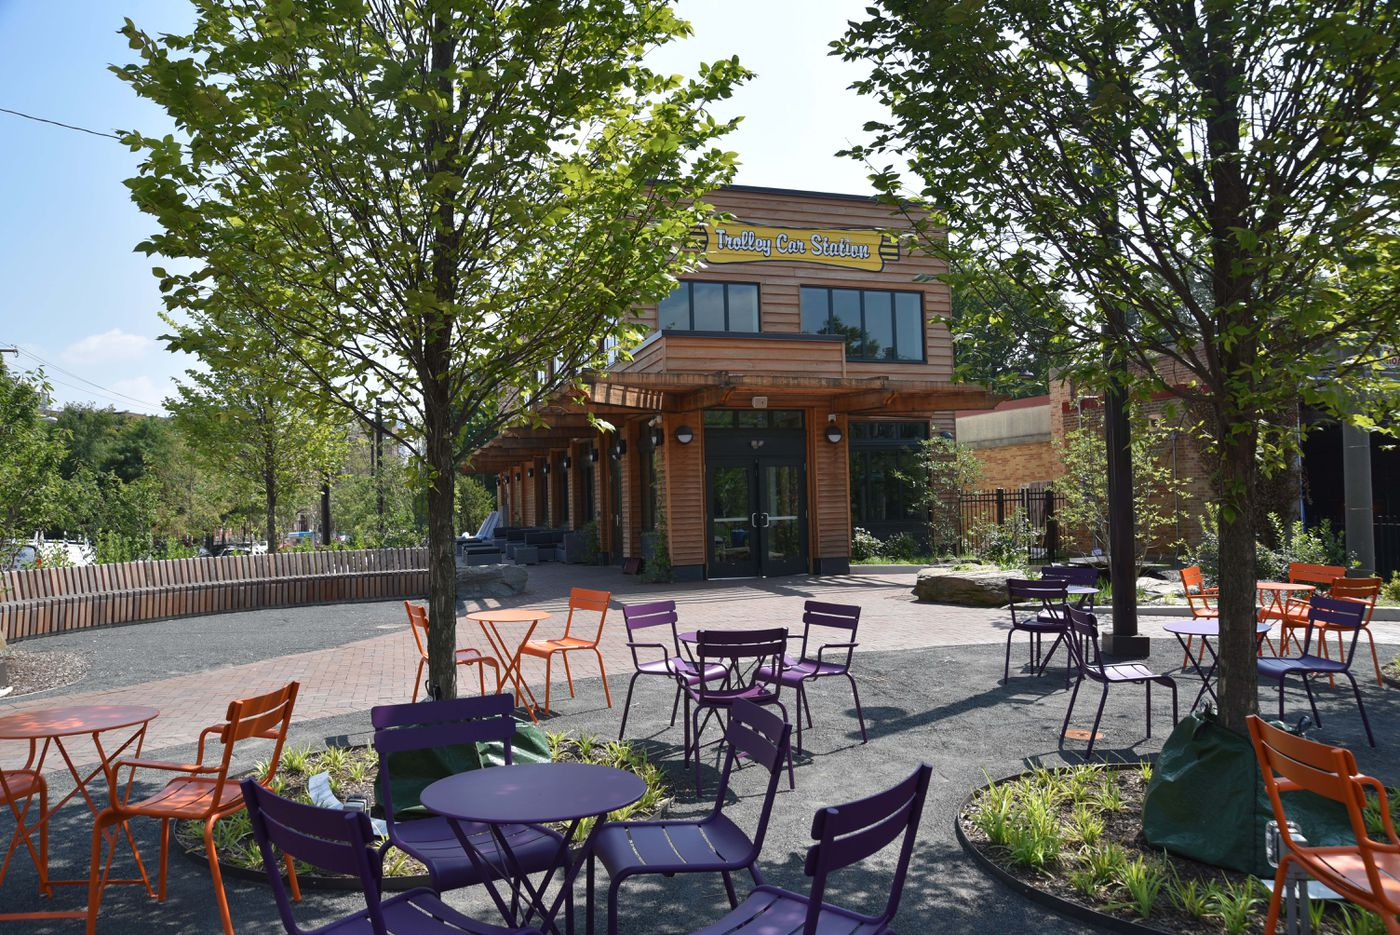 The new restaurant, called Trolley Car Station, promises to keep the Portal Gardens active from morning until evening. The public plaza is demarcated by a generous curving bench.